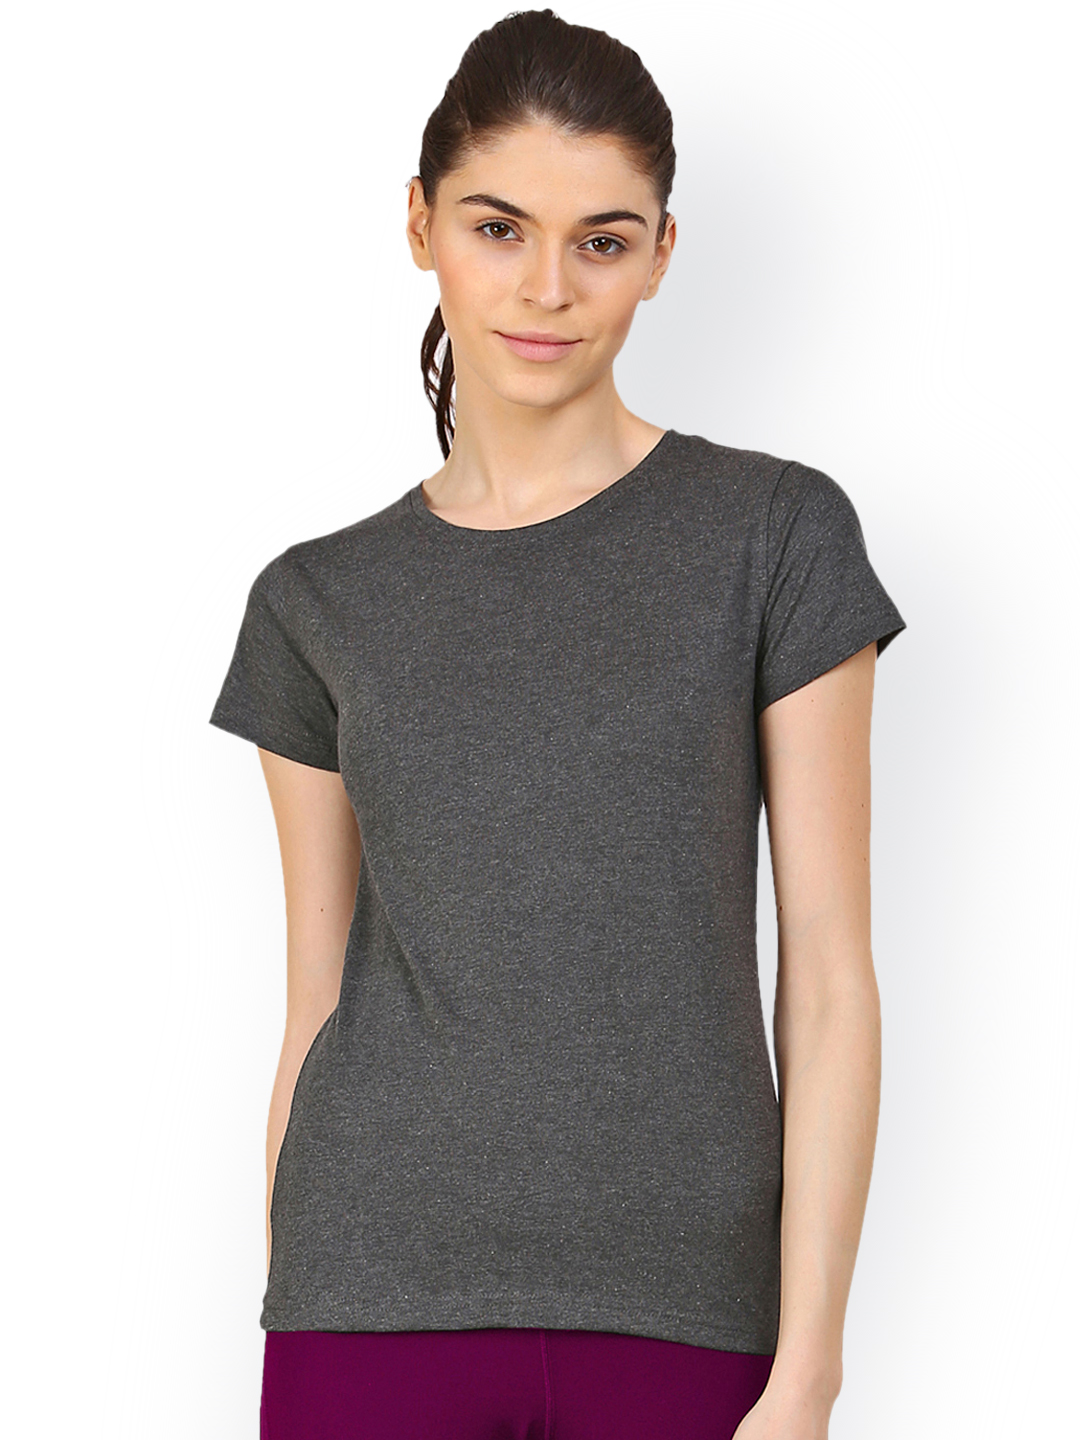 appulse Women Charcoal Solid Round Neck T-shirt Price in India